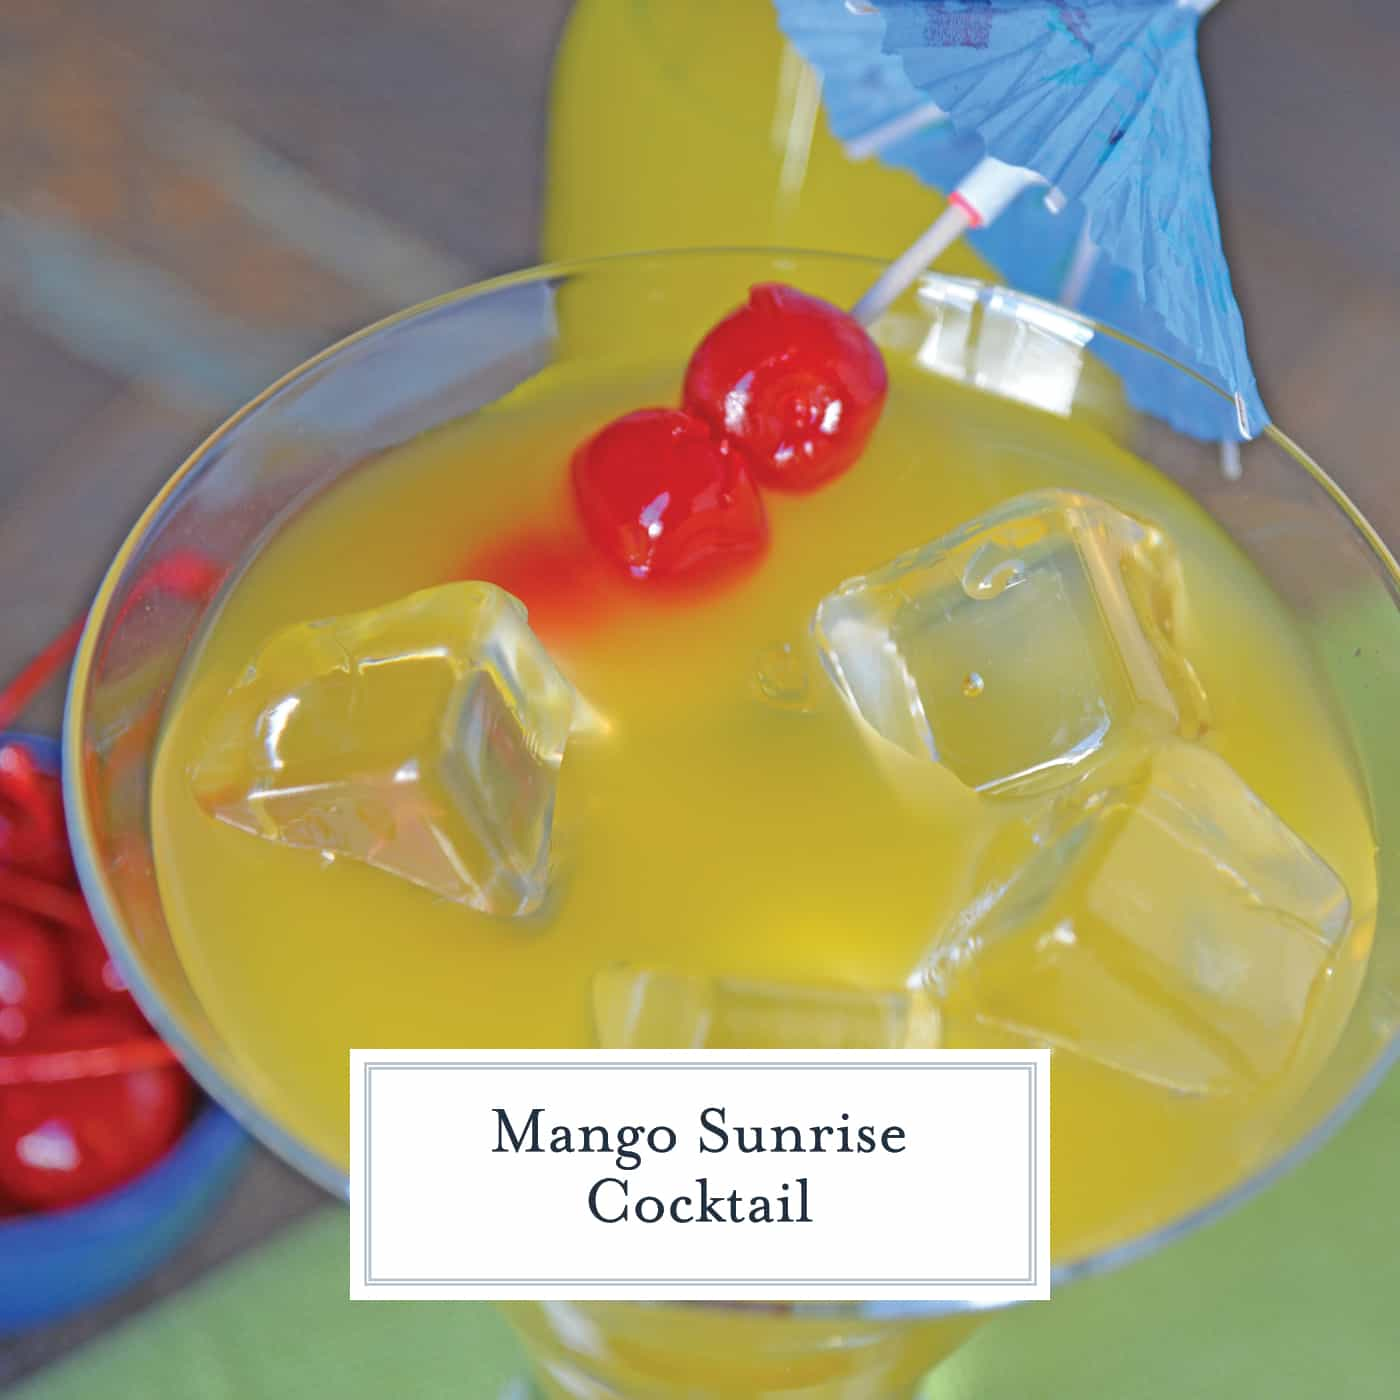 A Mango Sunrise is a deliciously refreshing tequila cocktail that is perfect for sipping any time of day! This Mango Sunrise recipe makes one delicious drink! #tequilacocktails #cocktailsthatusetequila #mangococktails www.savoryexperiments.com